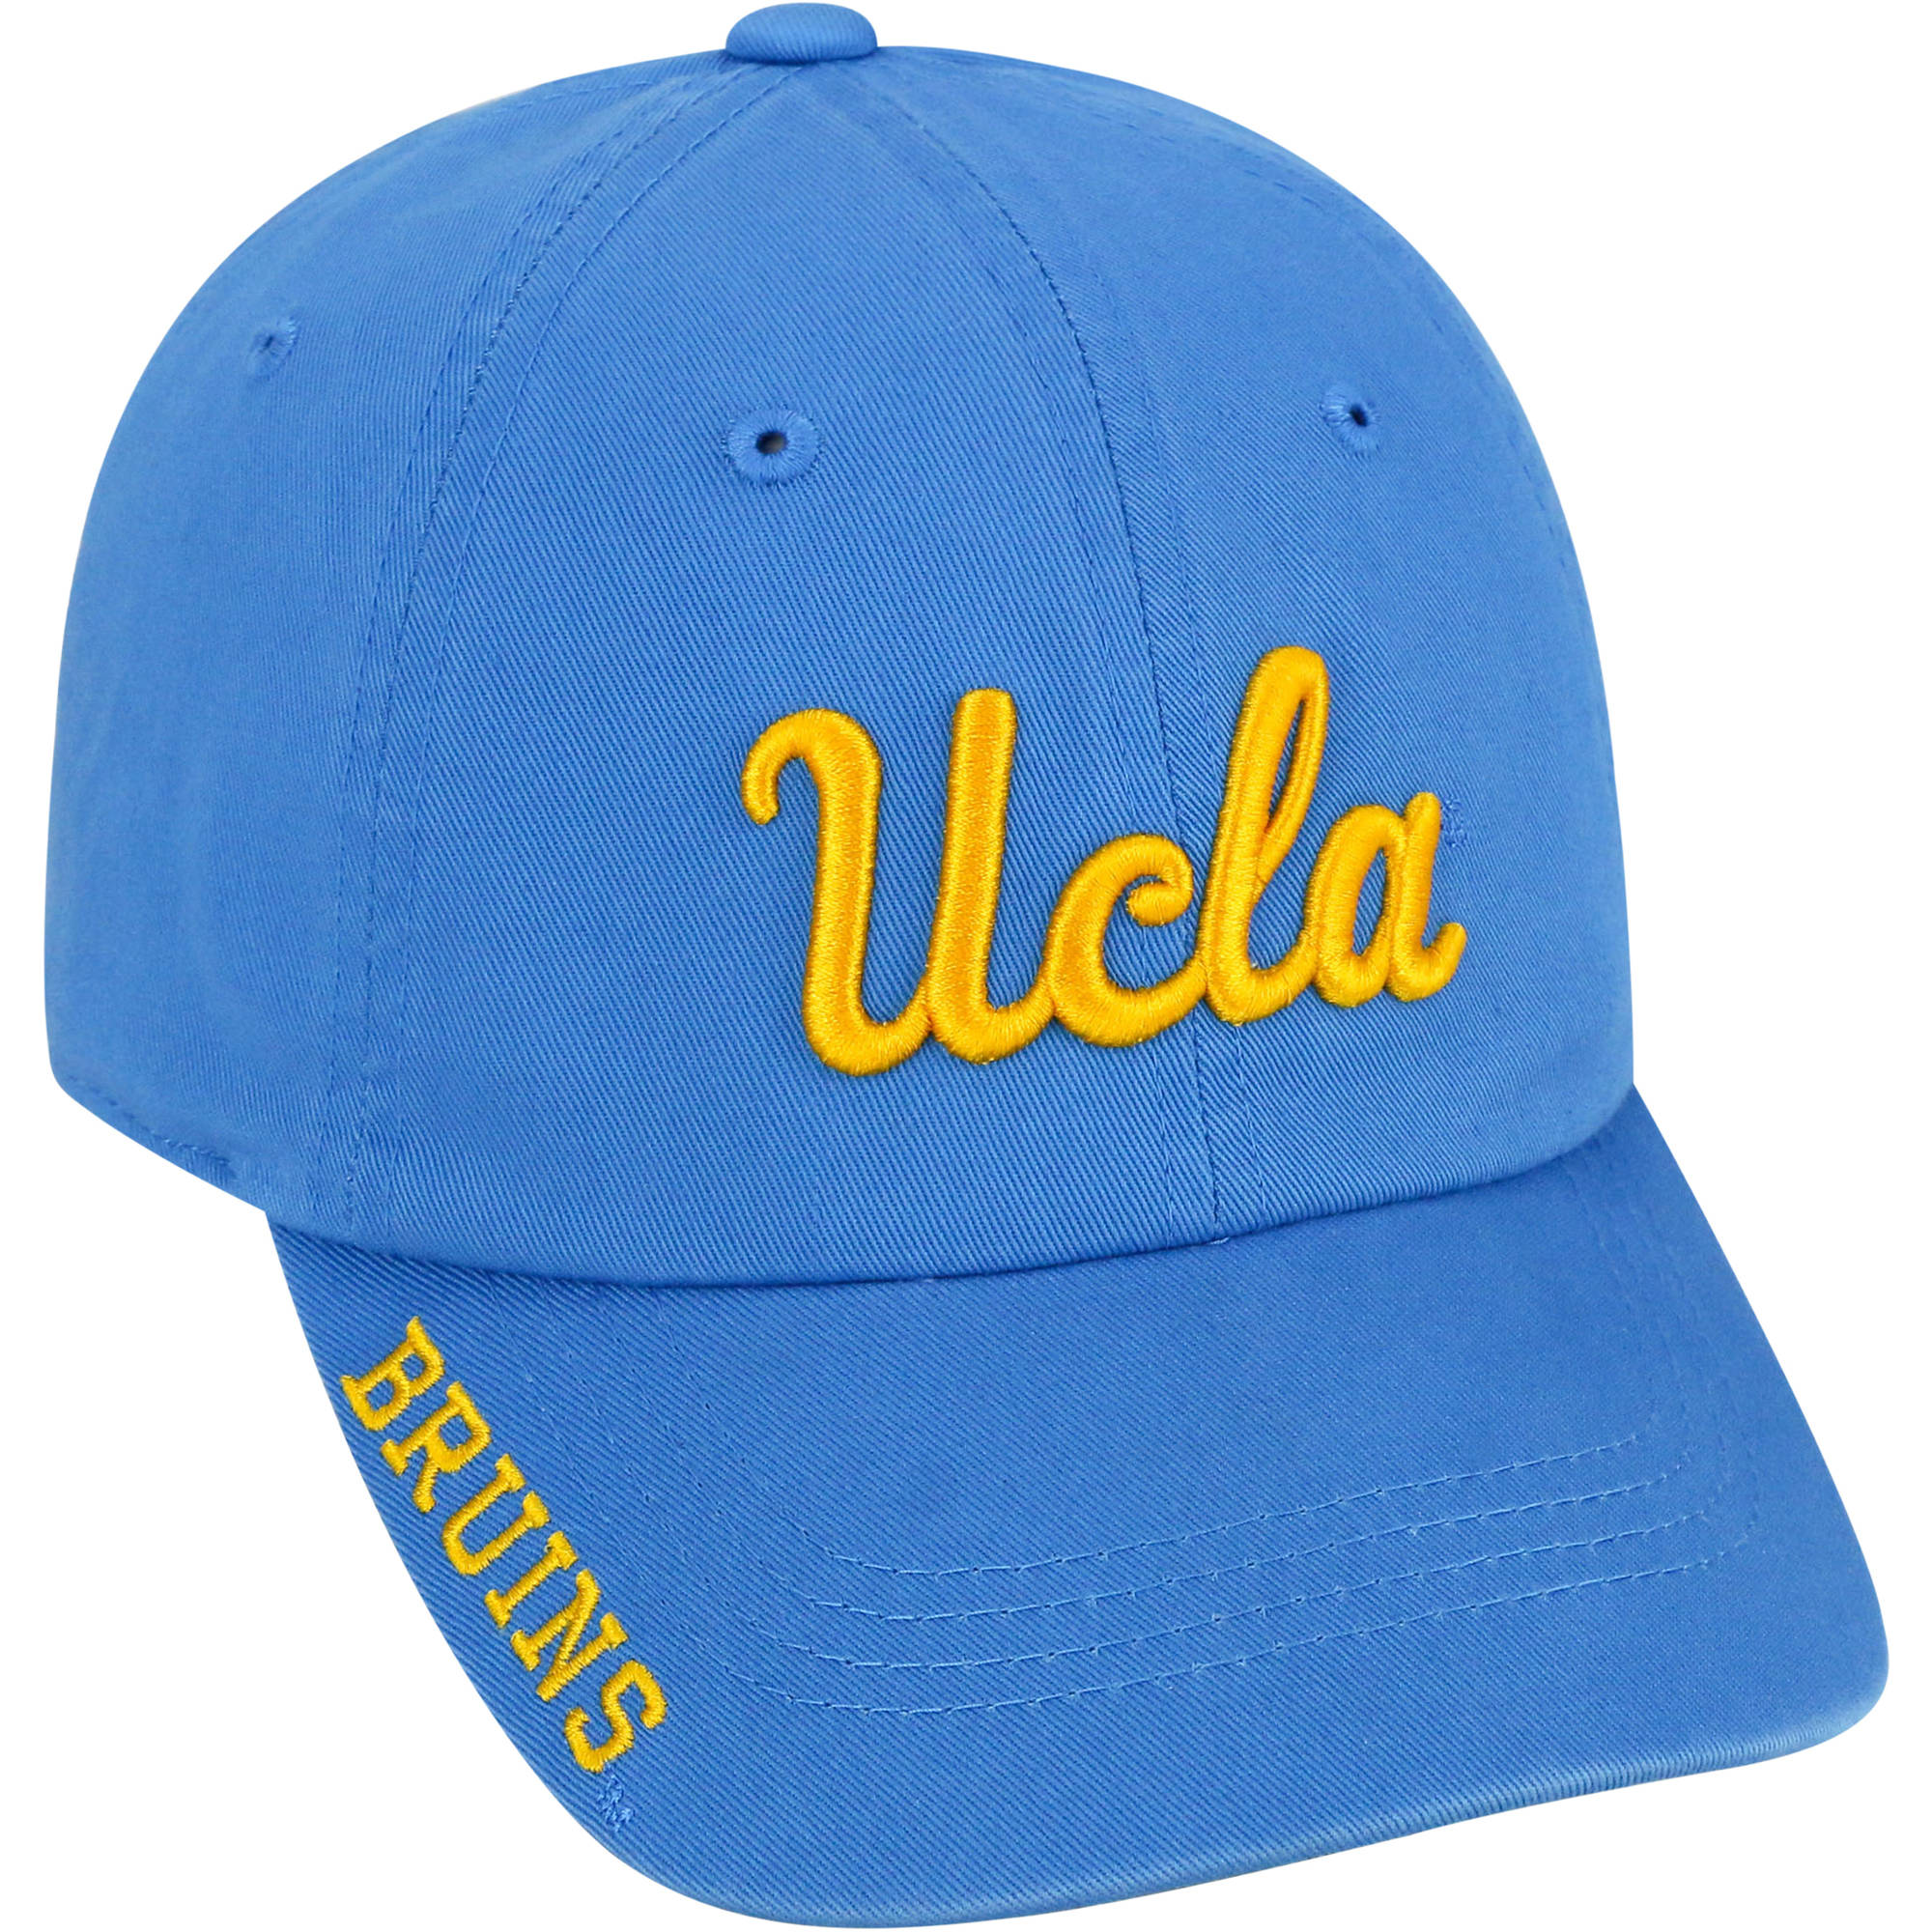 University Of Ucla Bruins Home Baseball Cap